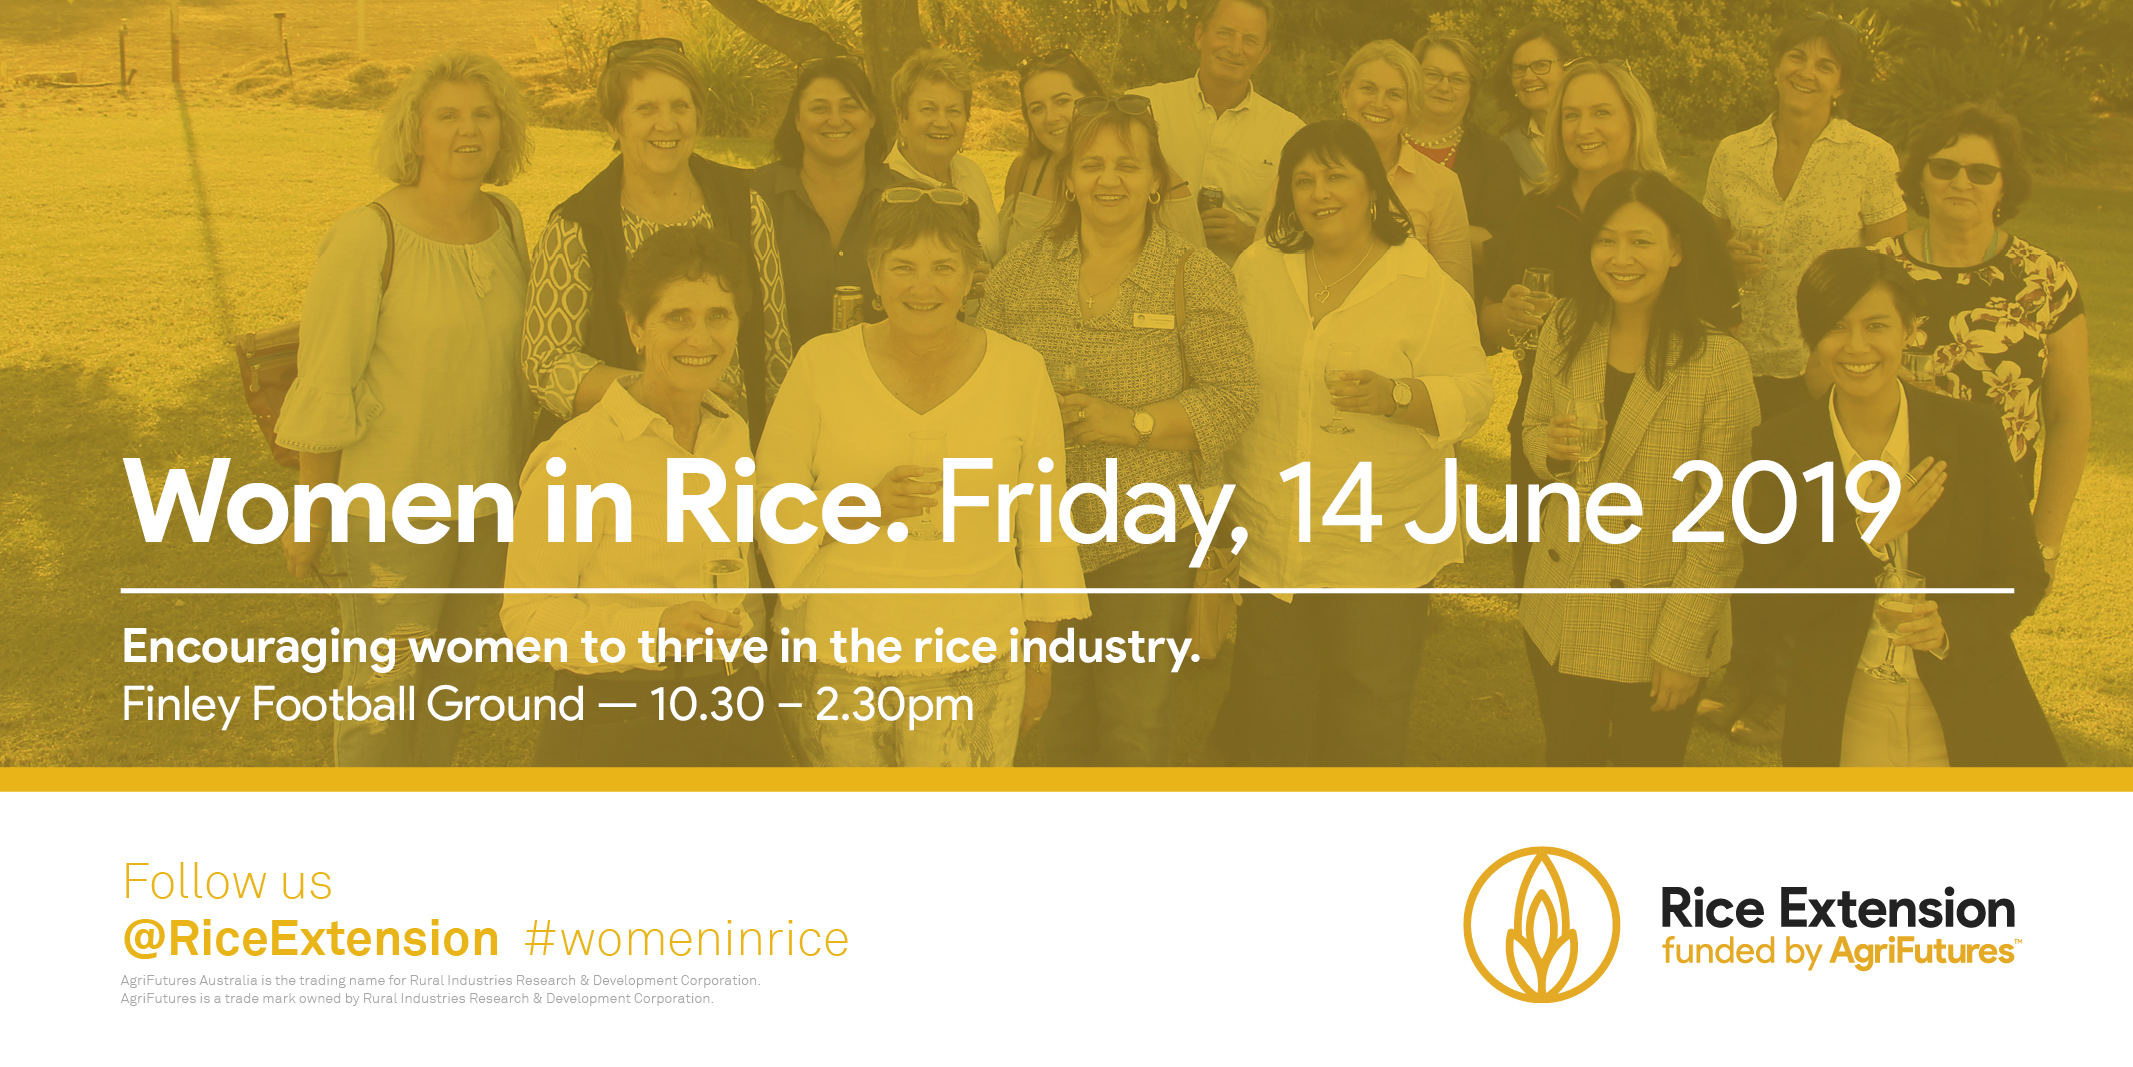 RE034-women-in-rice-tile-TWITTER-S2V2.jpg